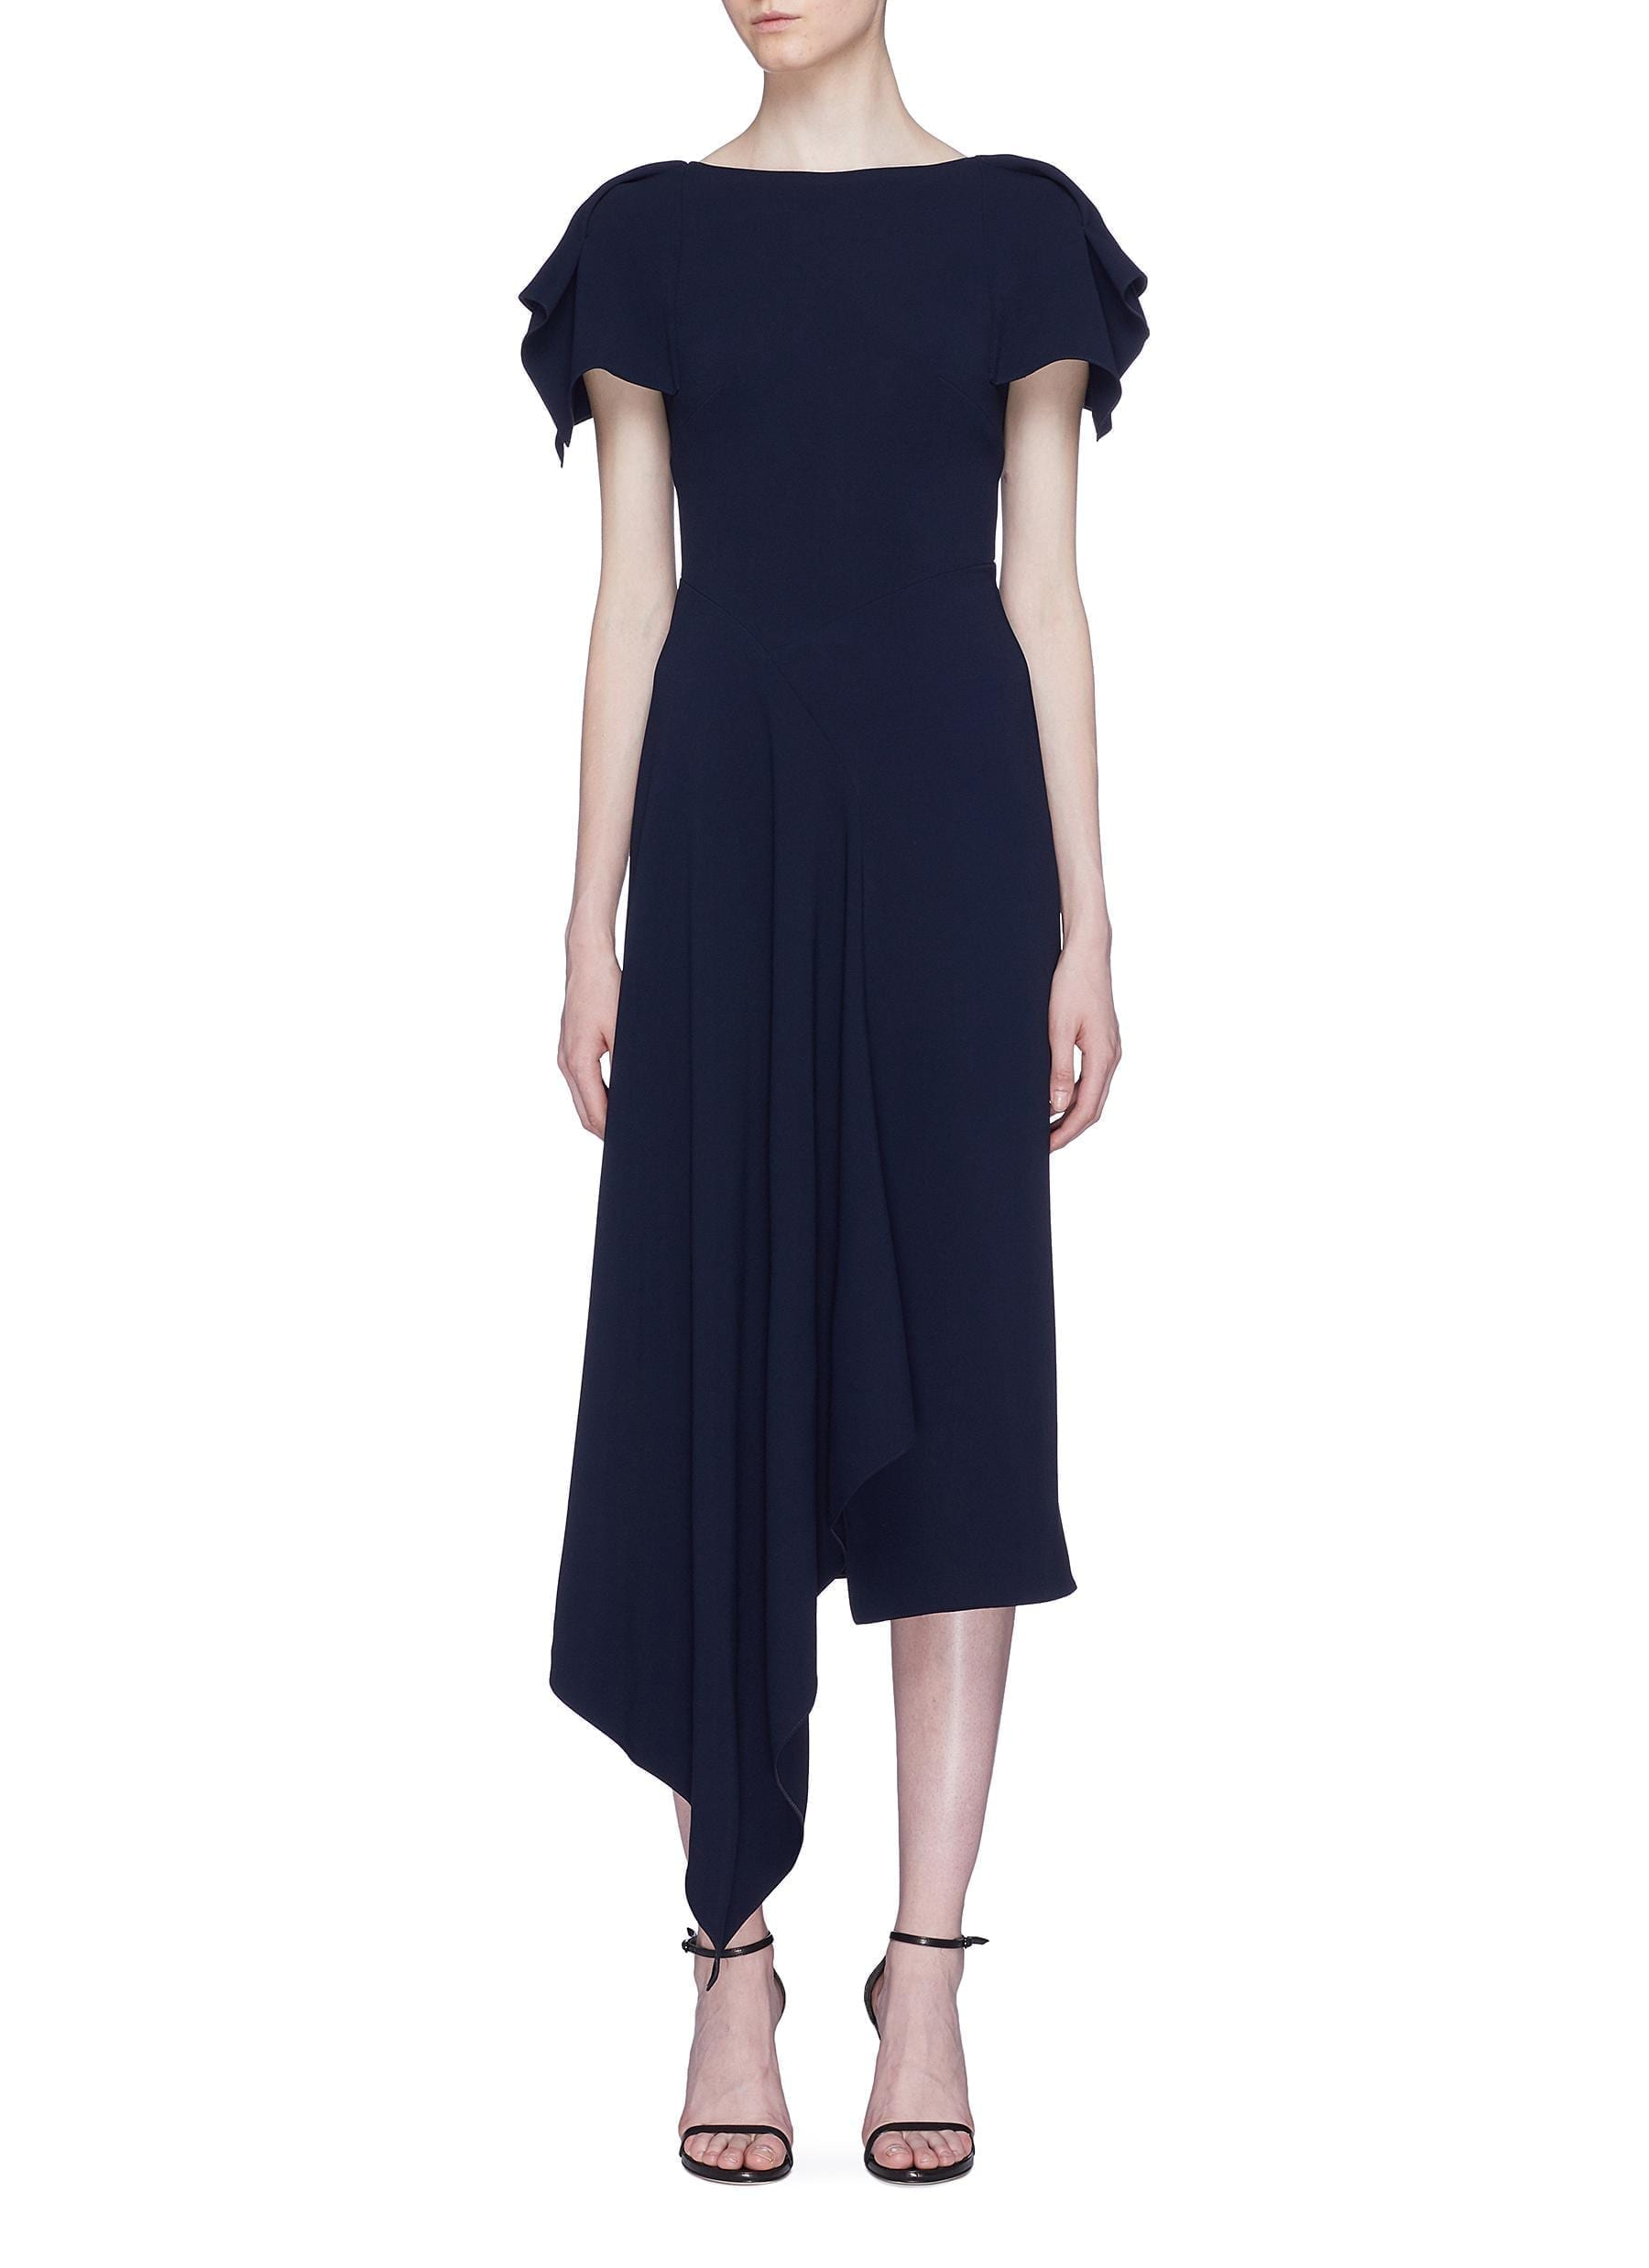 ROLAND MOURET 'Warren' Asymmetric Drape Navy Dress